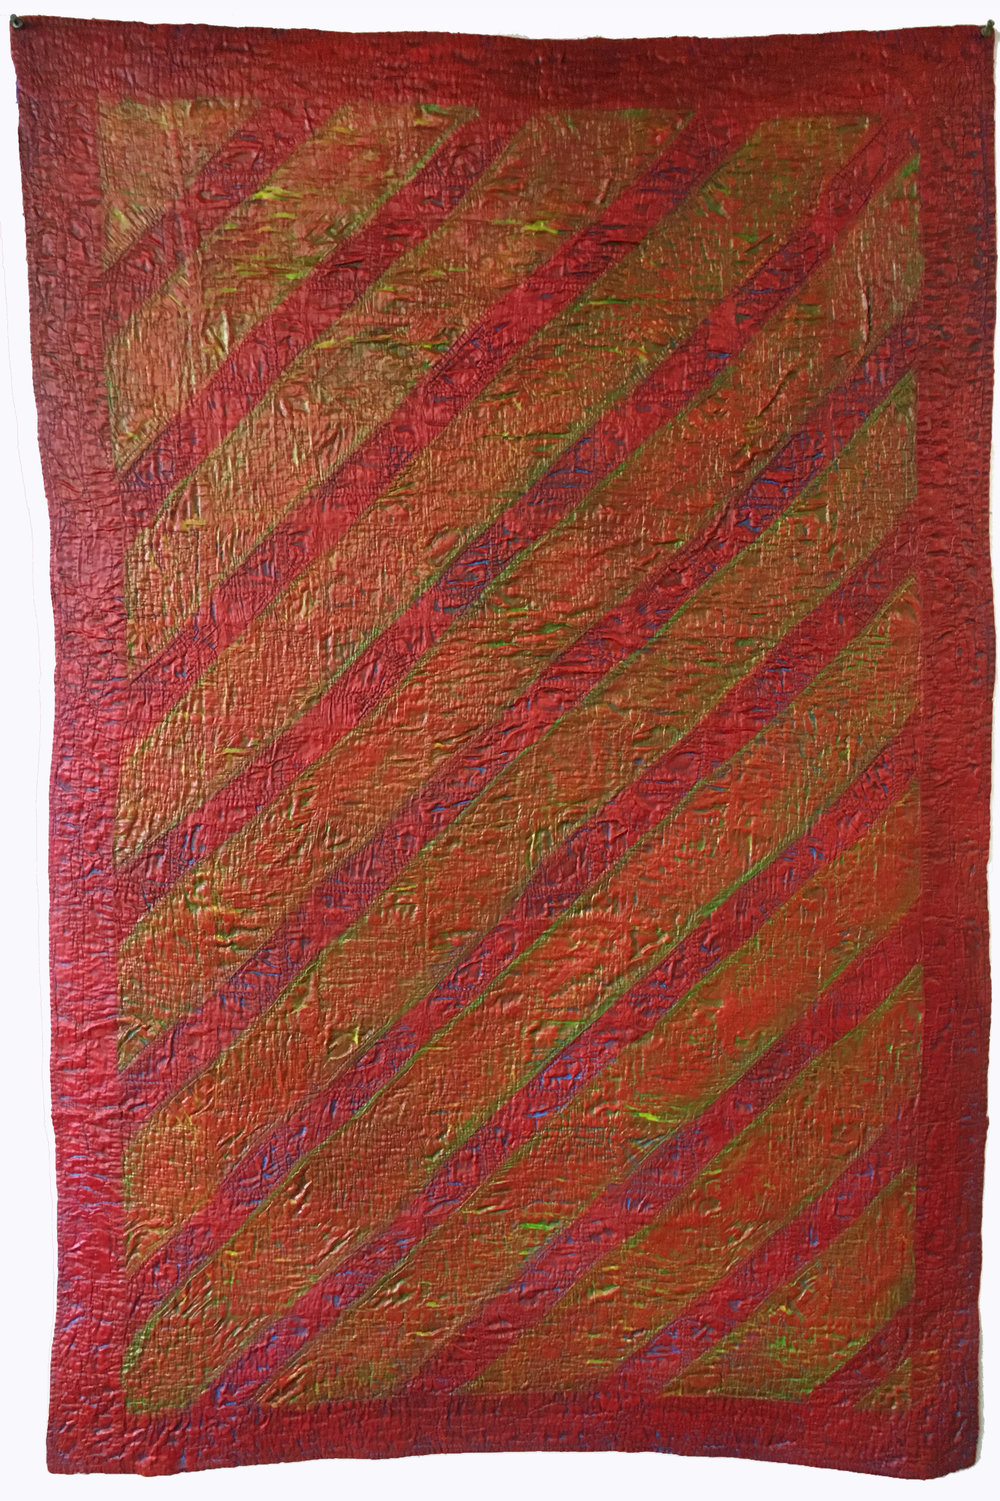 """Red Basketweave"" by Denise Furnish, 56x37in, worn and discarded flower basket crib quilt, acrylic, $1200 